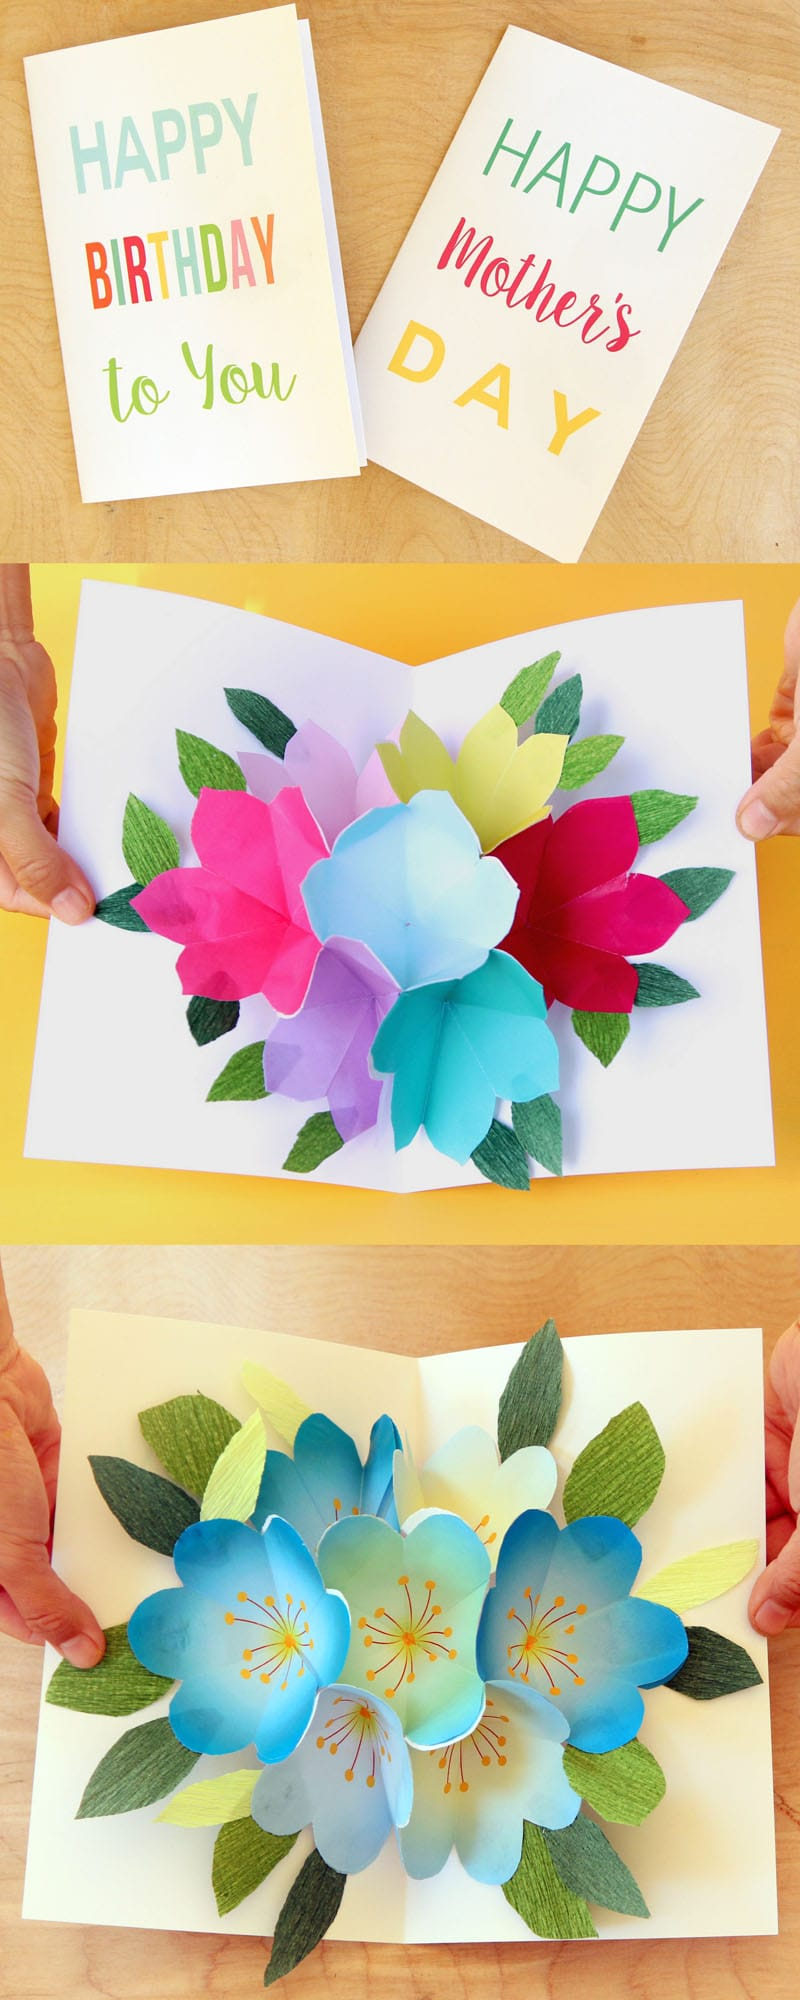 Pop up flowers diy printable mothers day card a piece of rainbow download the happy birthday pop up card printables here and check out 3 very helpful tips especially important if you have not made this before izmirmasajfo